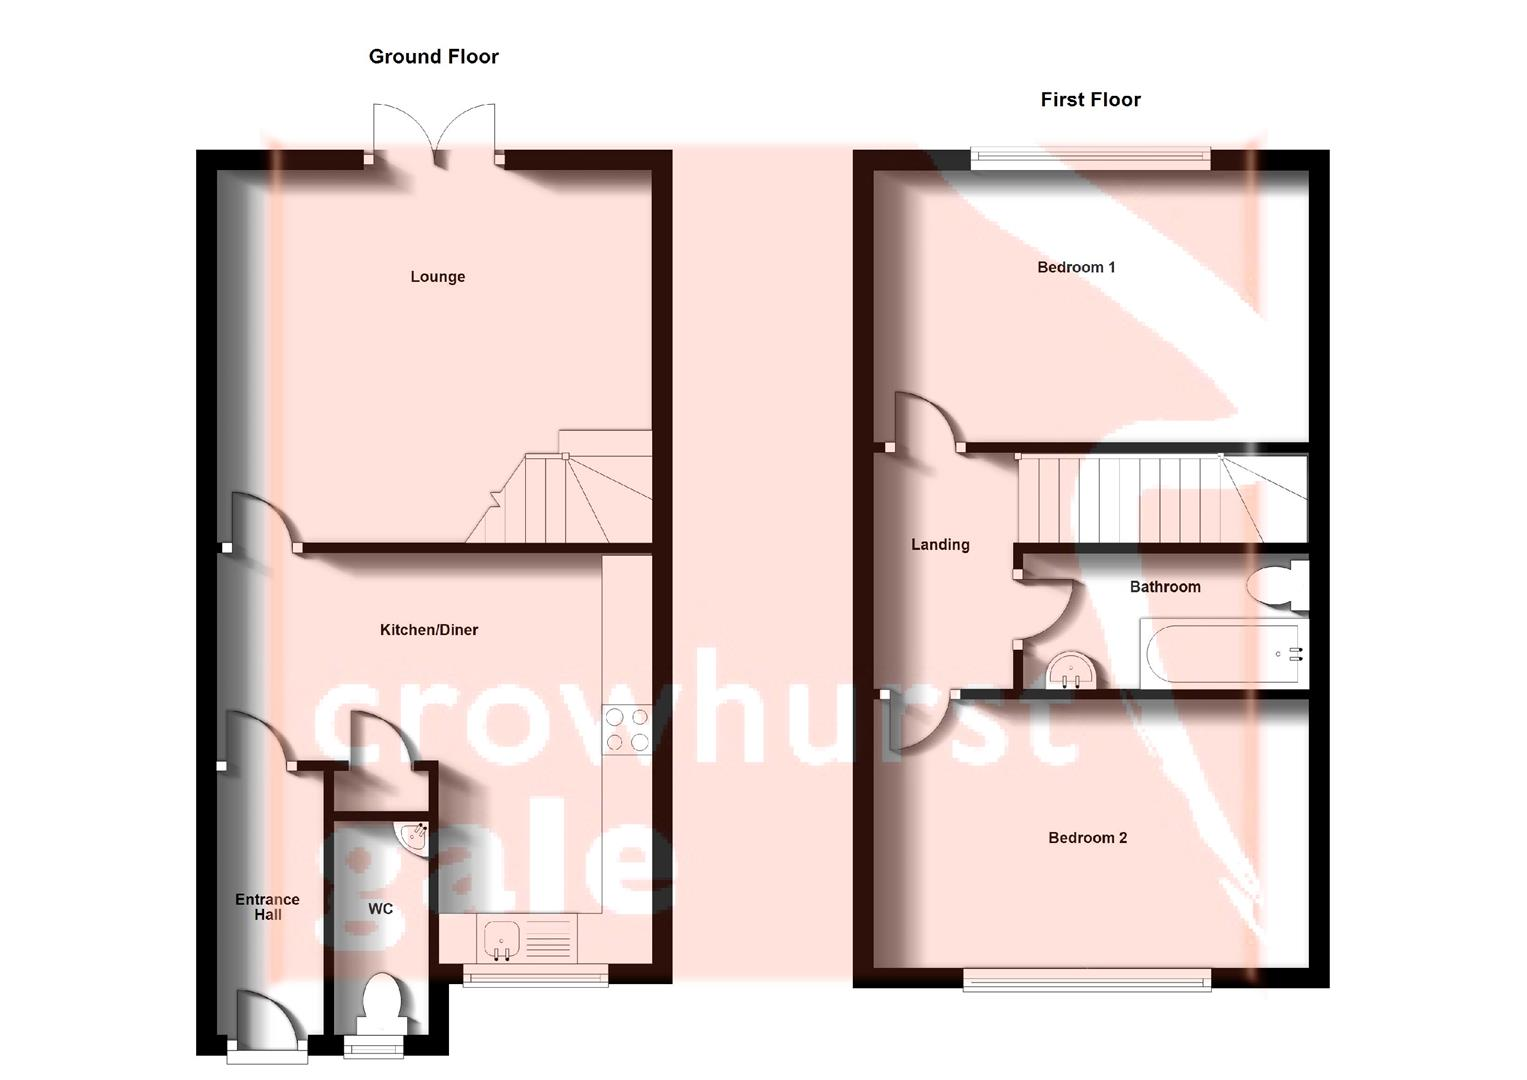 Floorplans For Willowford Close, Long Lawford, Rugby